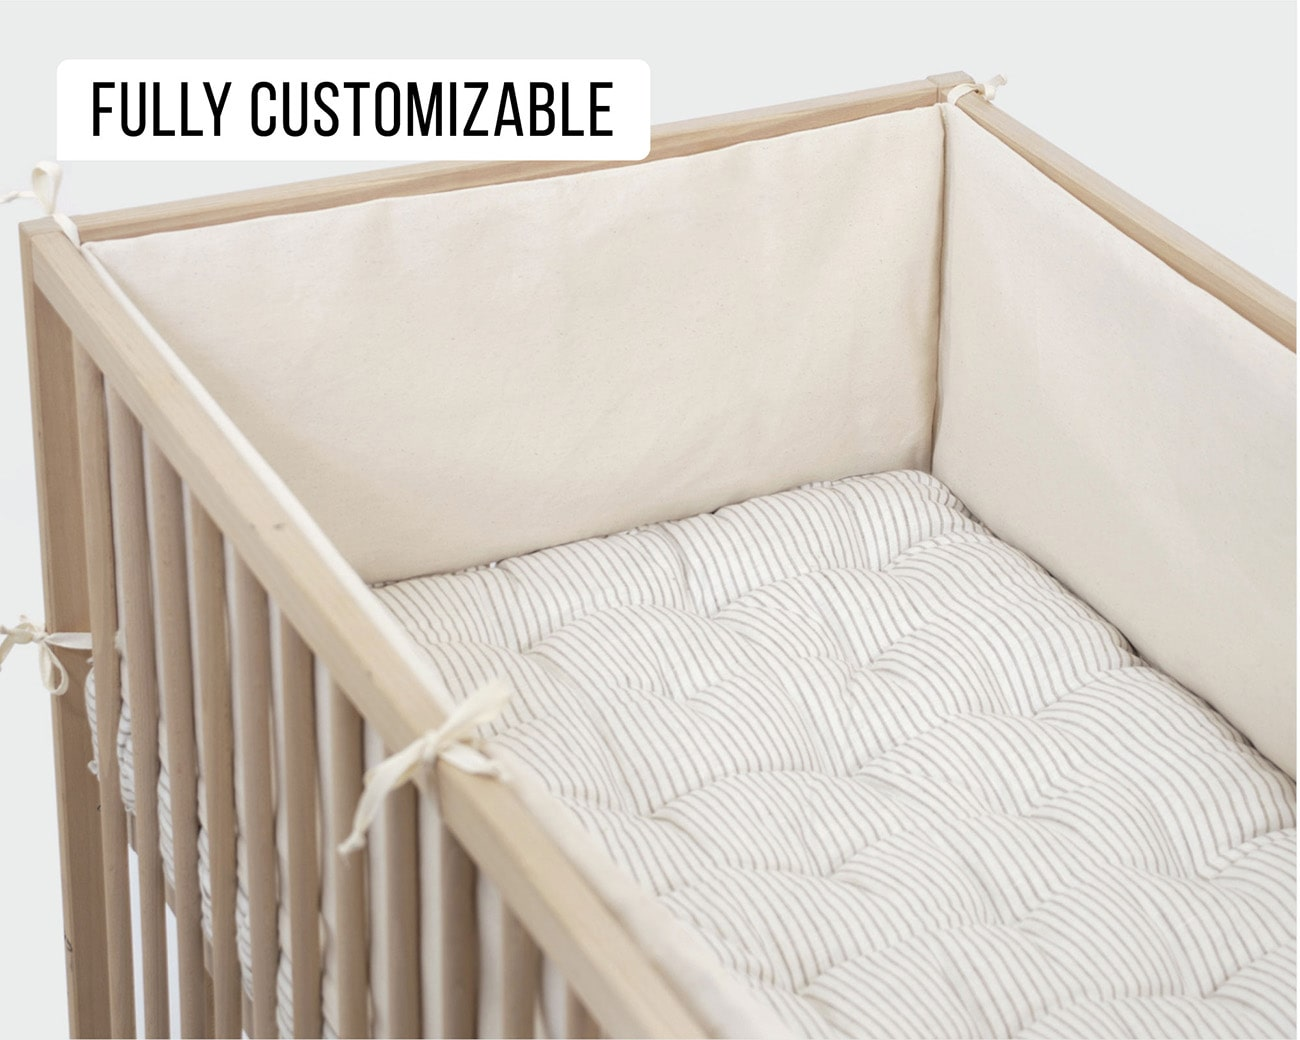 120cm Baby Crib Bumper Soft Infant Bed Around Protection Newborn Protector Pad